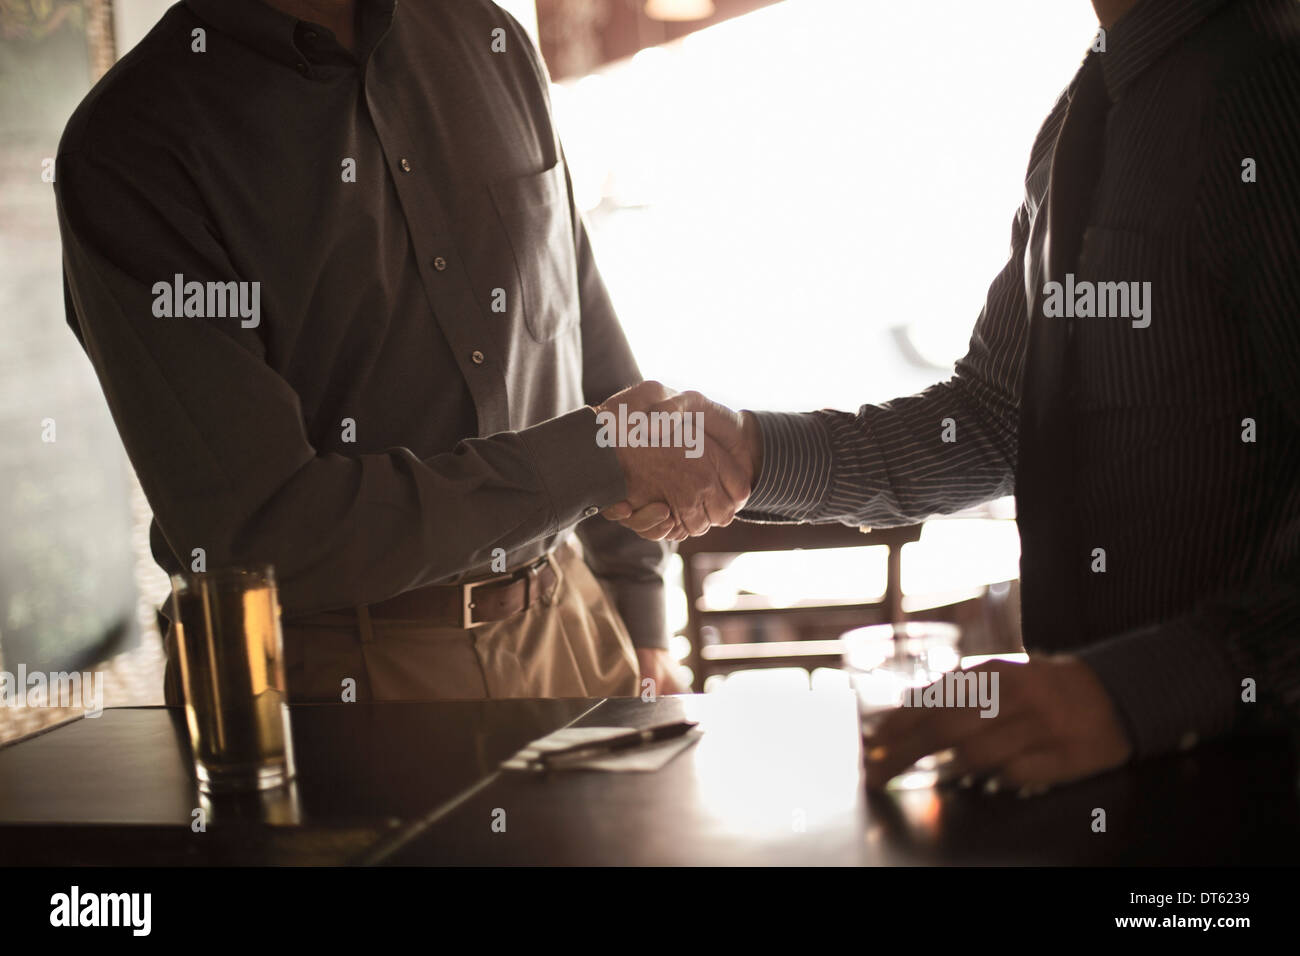 Two businessmen shaking hands in wine bar - Stock Image